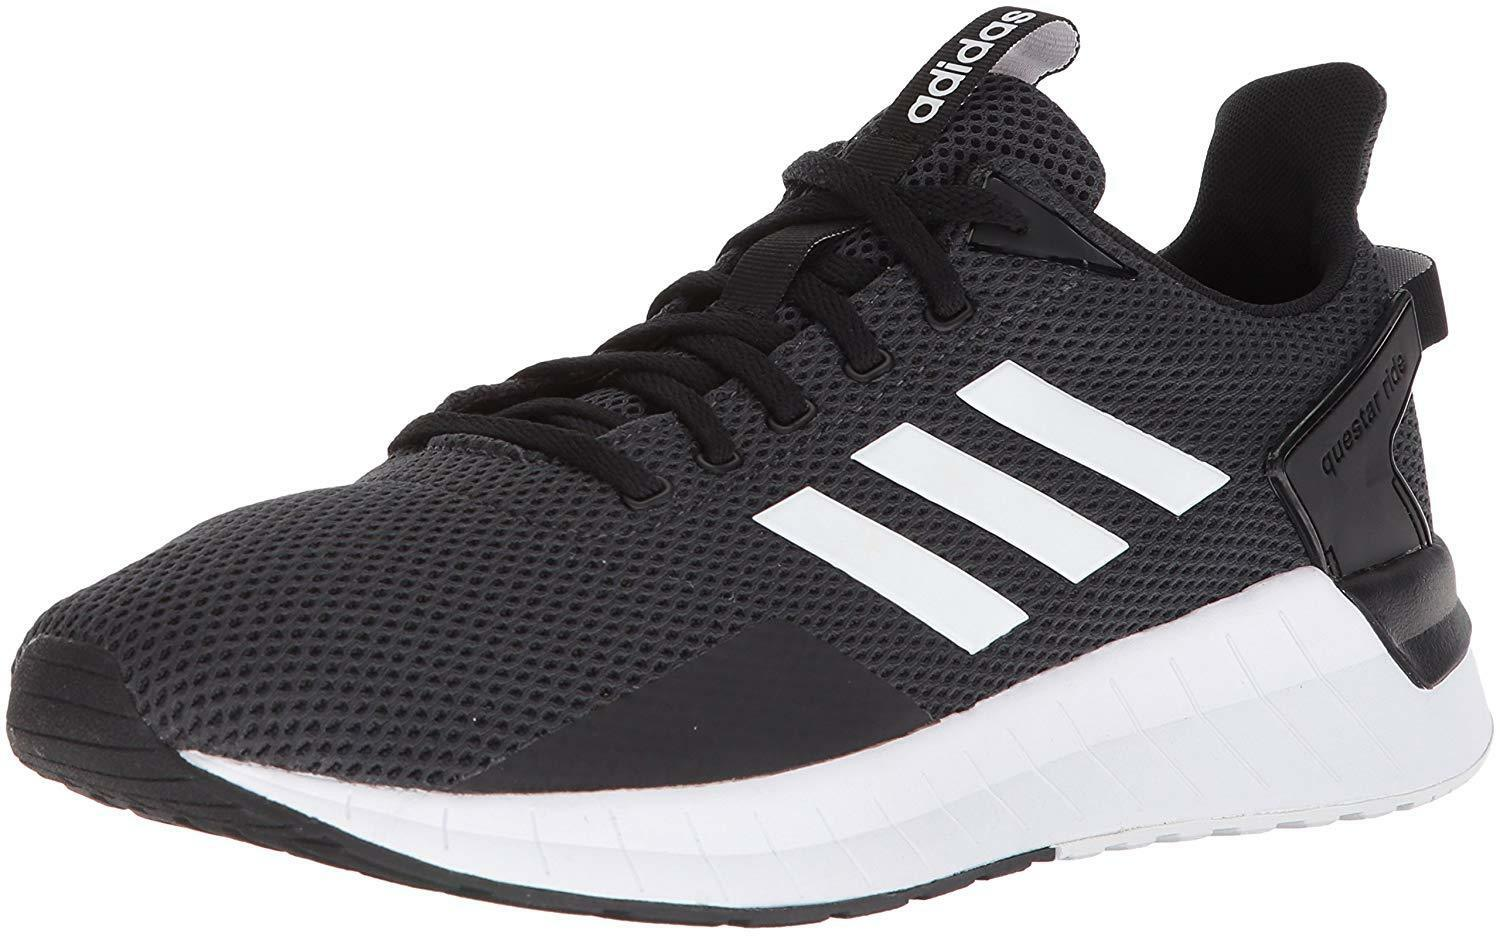 adidas Men's Questar 10.5 Ride Running Shoe, Black/White/Carbon, 10.5 Questar M US 0fc24d